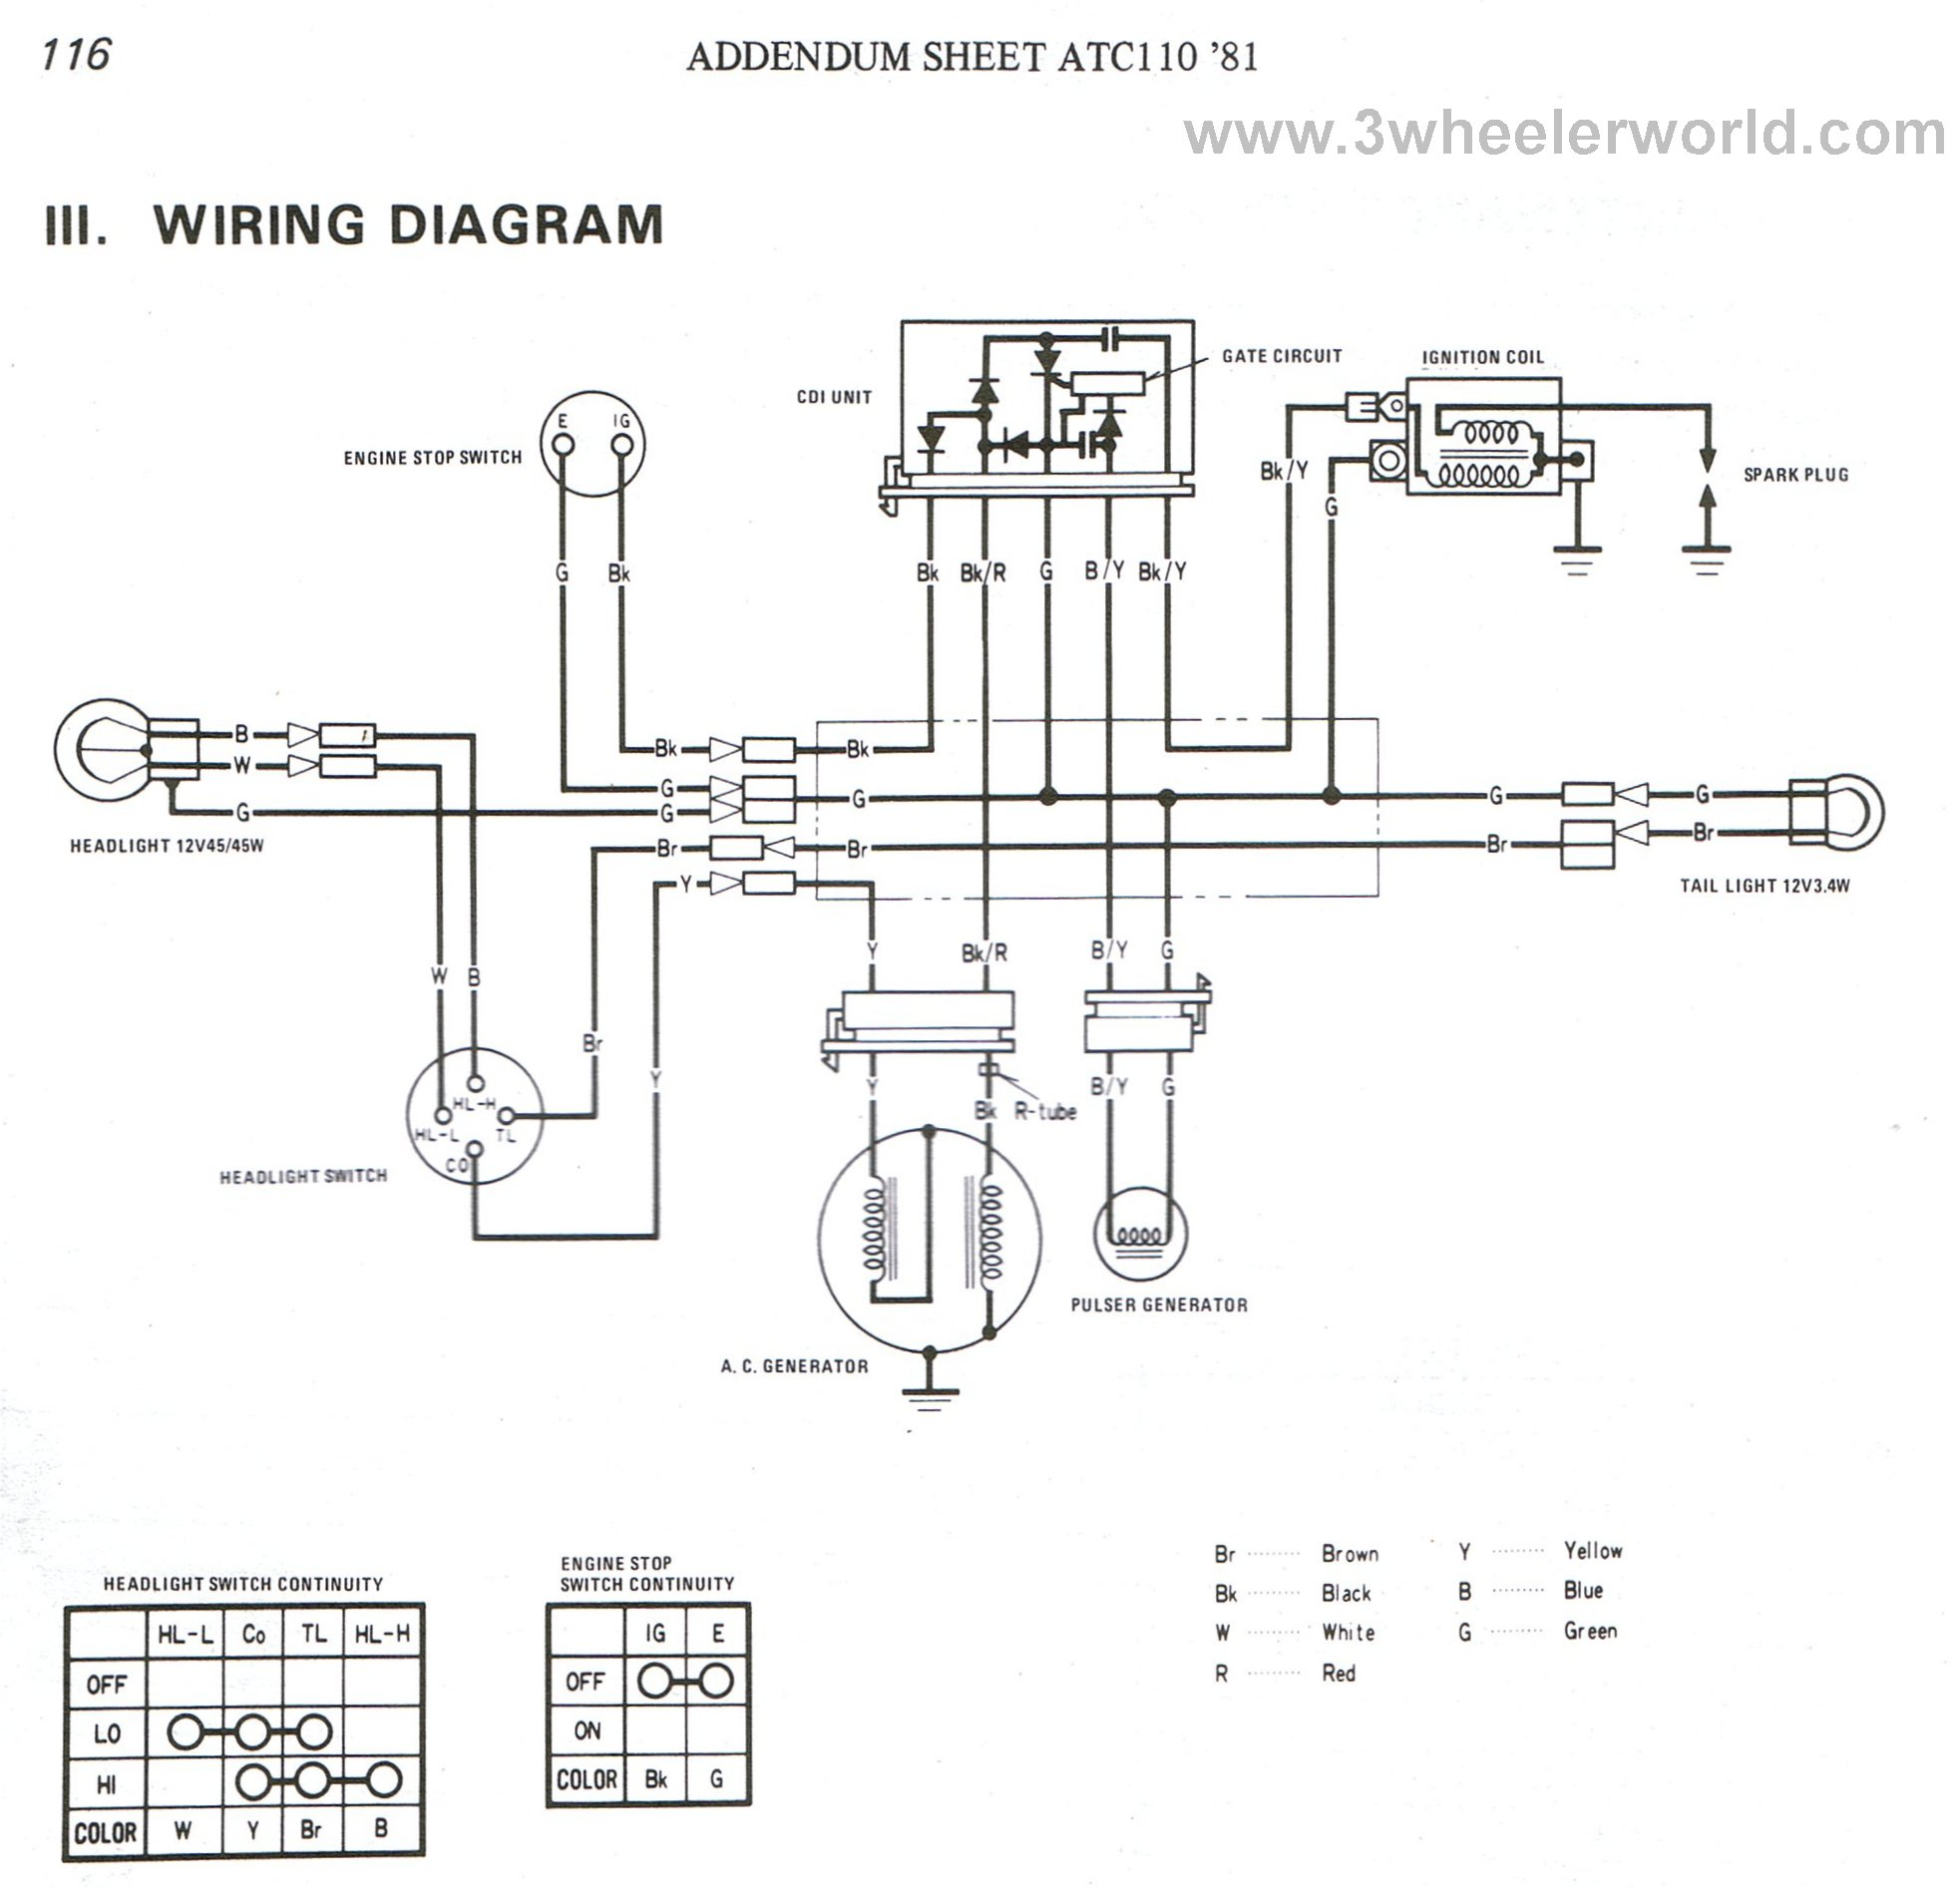 Kazuma Wiring Diagram Custom Project For Meerkat 50cc Atv 3 Wheeler World Tech Help Honda Diagrams 50 Quad